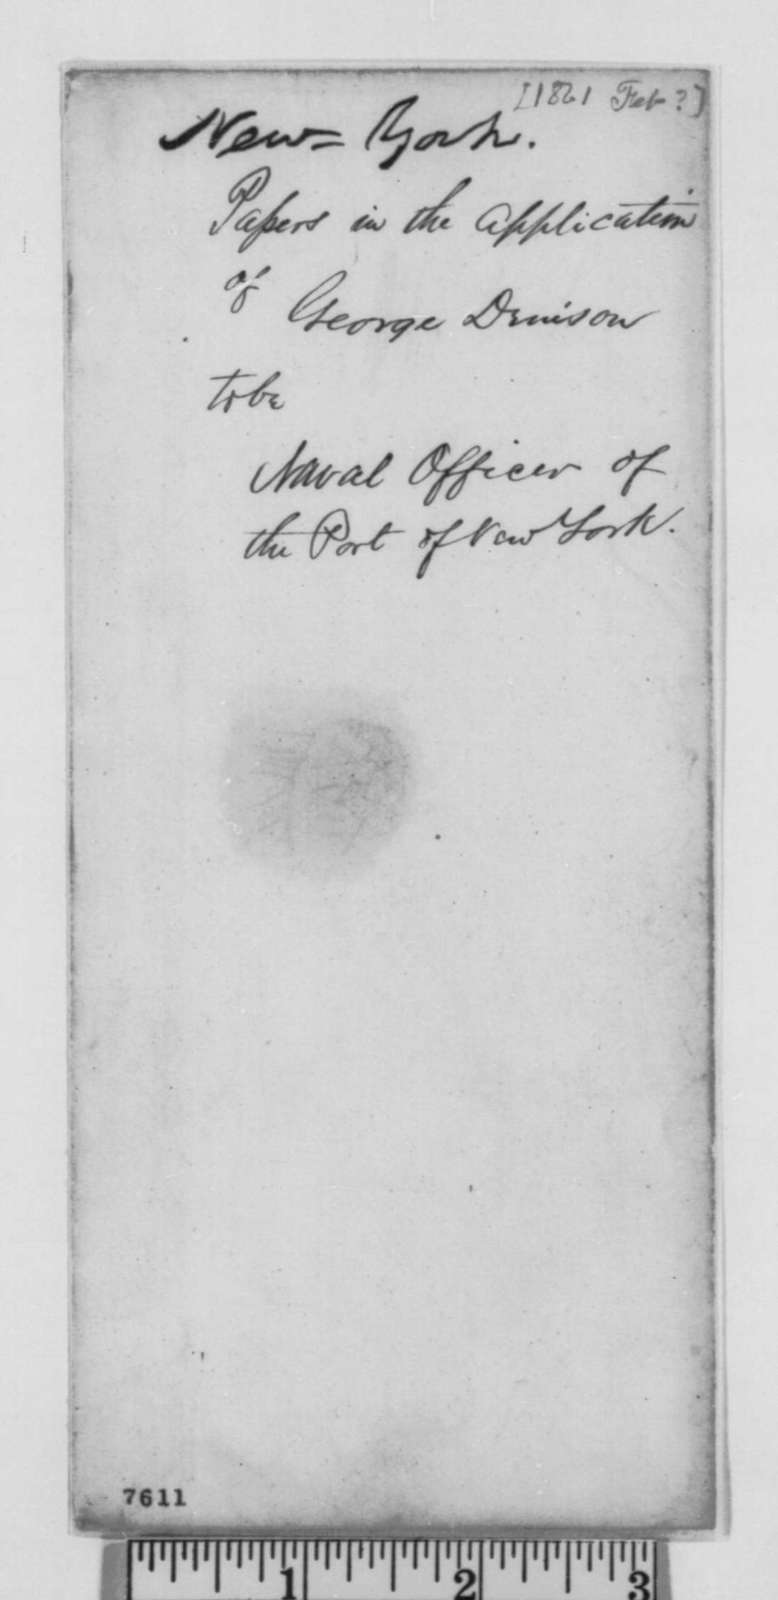 John Hay, February 1861  (Memo on letters of recommendation for George Denison)